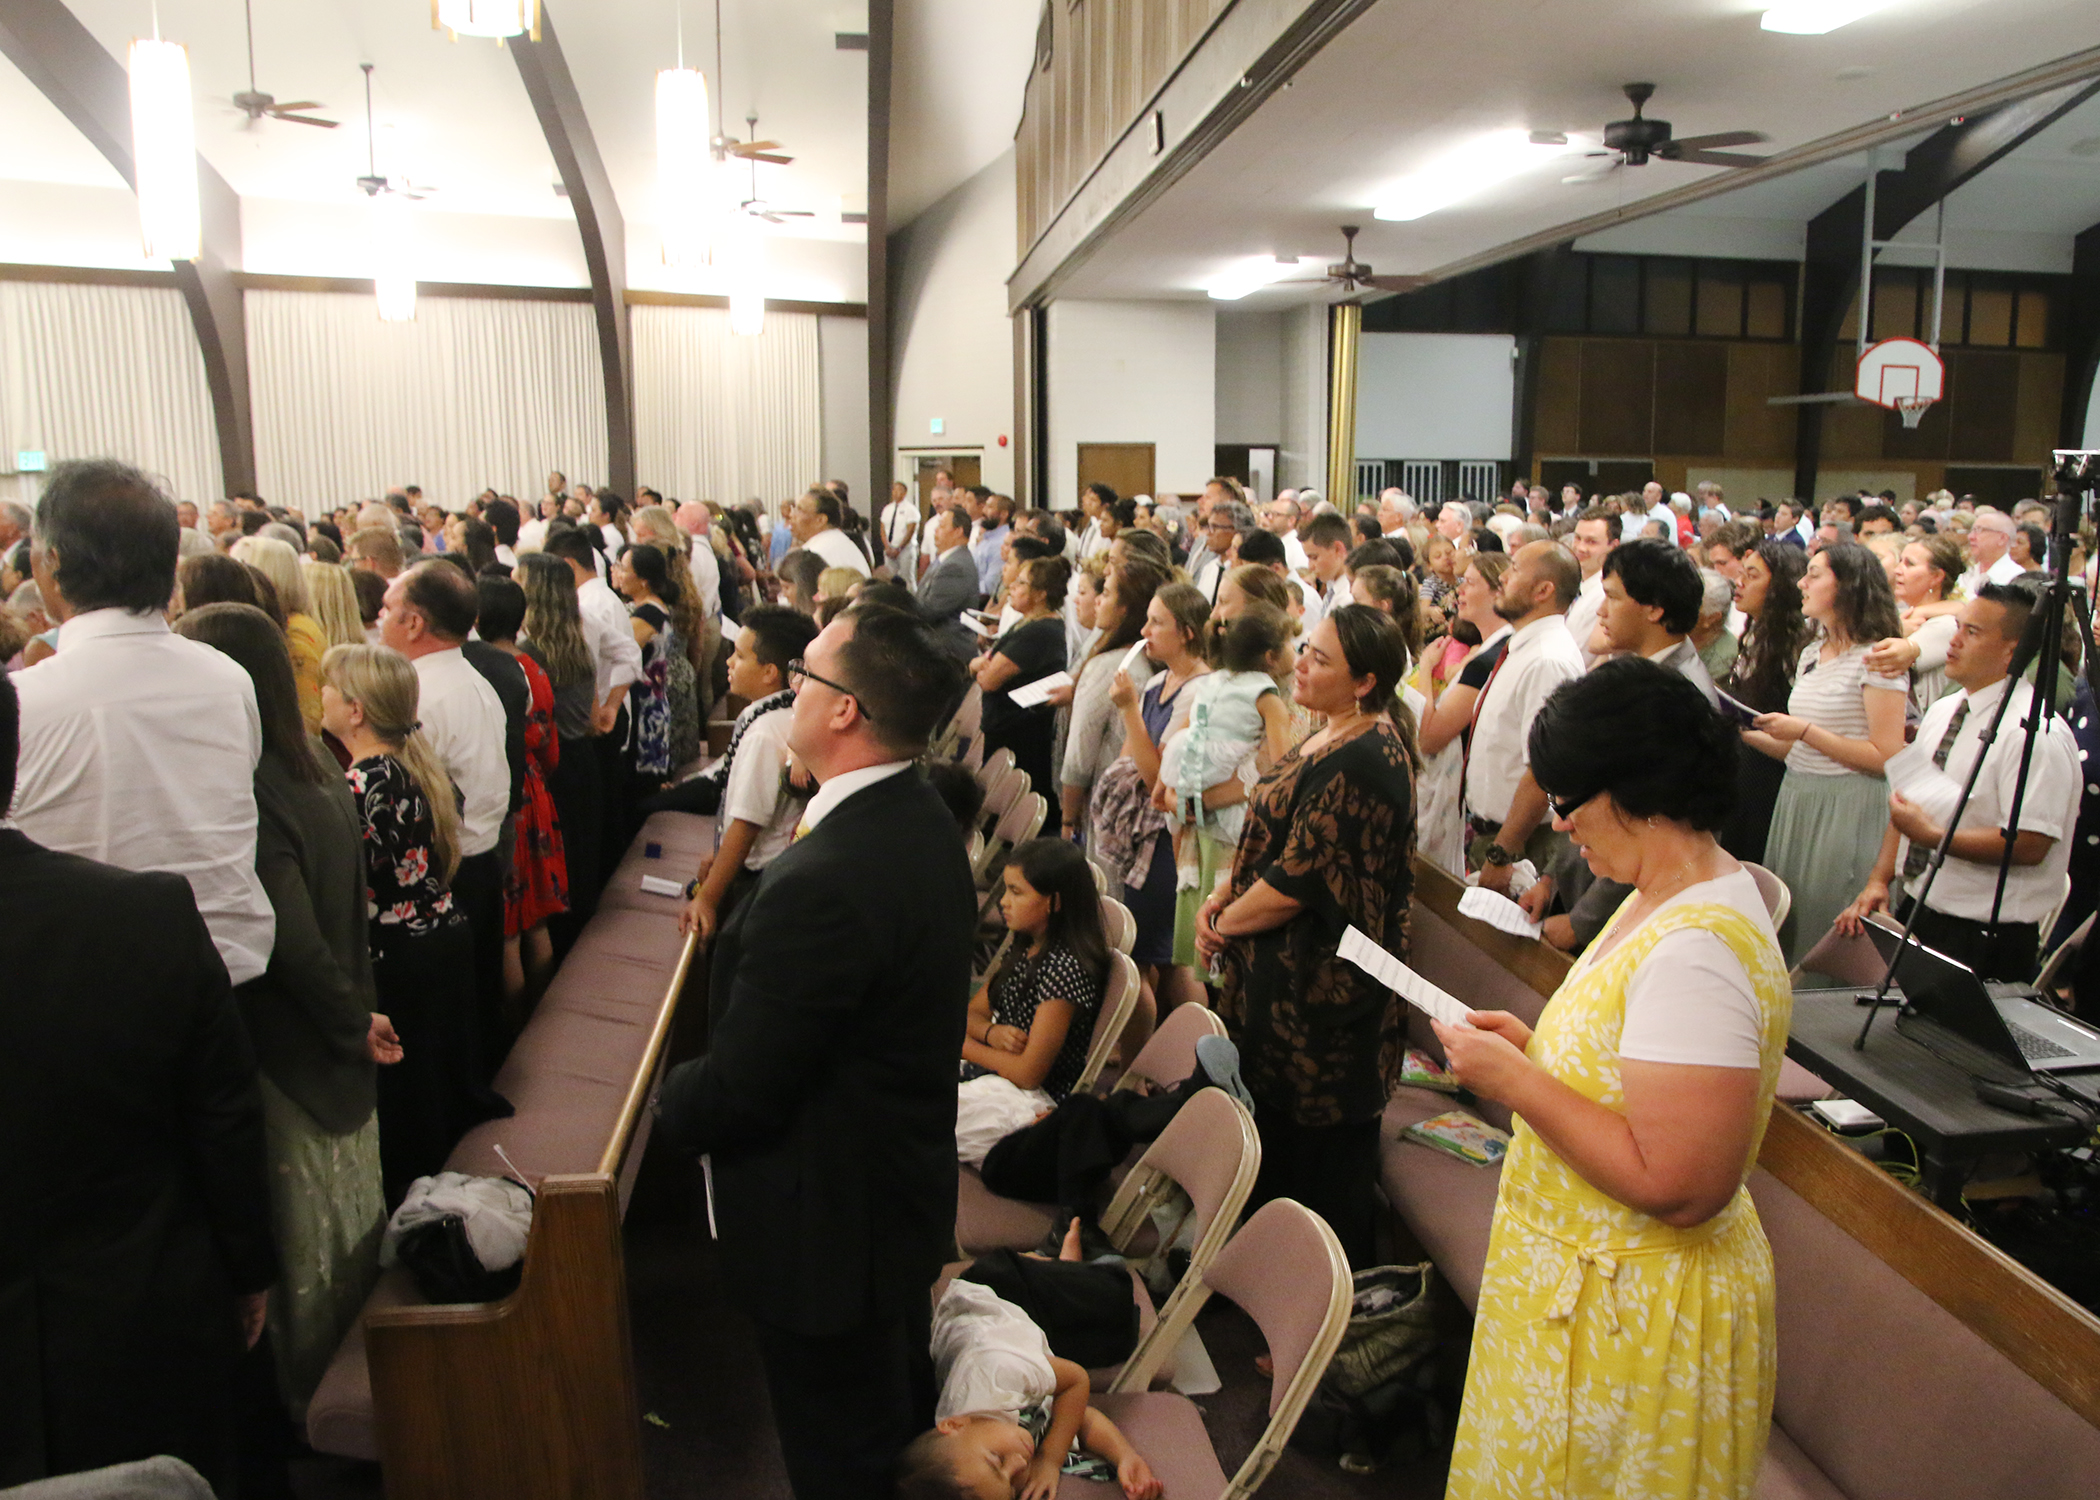 Approximately 1,200 Latter-day Saints, community leaders and a Tongan interfaith choir sing during a May 16, 2019, devotional at the Kona Hawaii Stake Center with President Russell M. Nelson, his wife, Sister Wendy Nelson; Elder Gerrit W. Gong of the Quorum of the Twelve Apostles; and his wife, Sister Susan Gong.